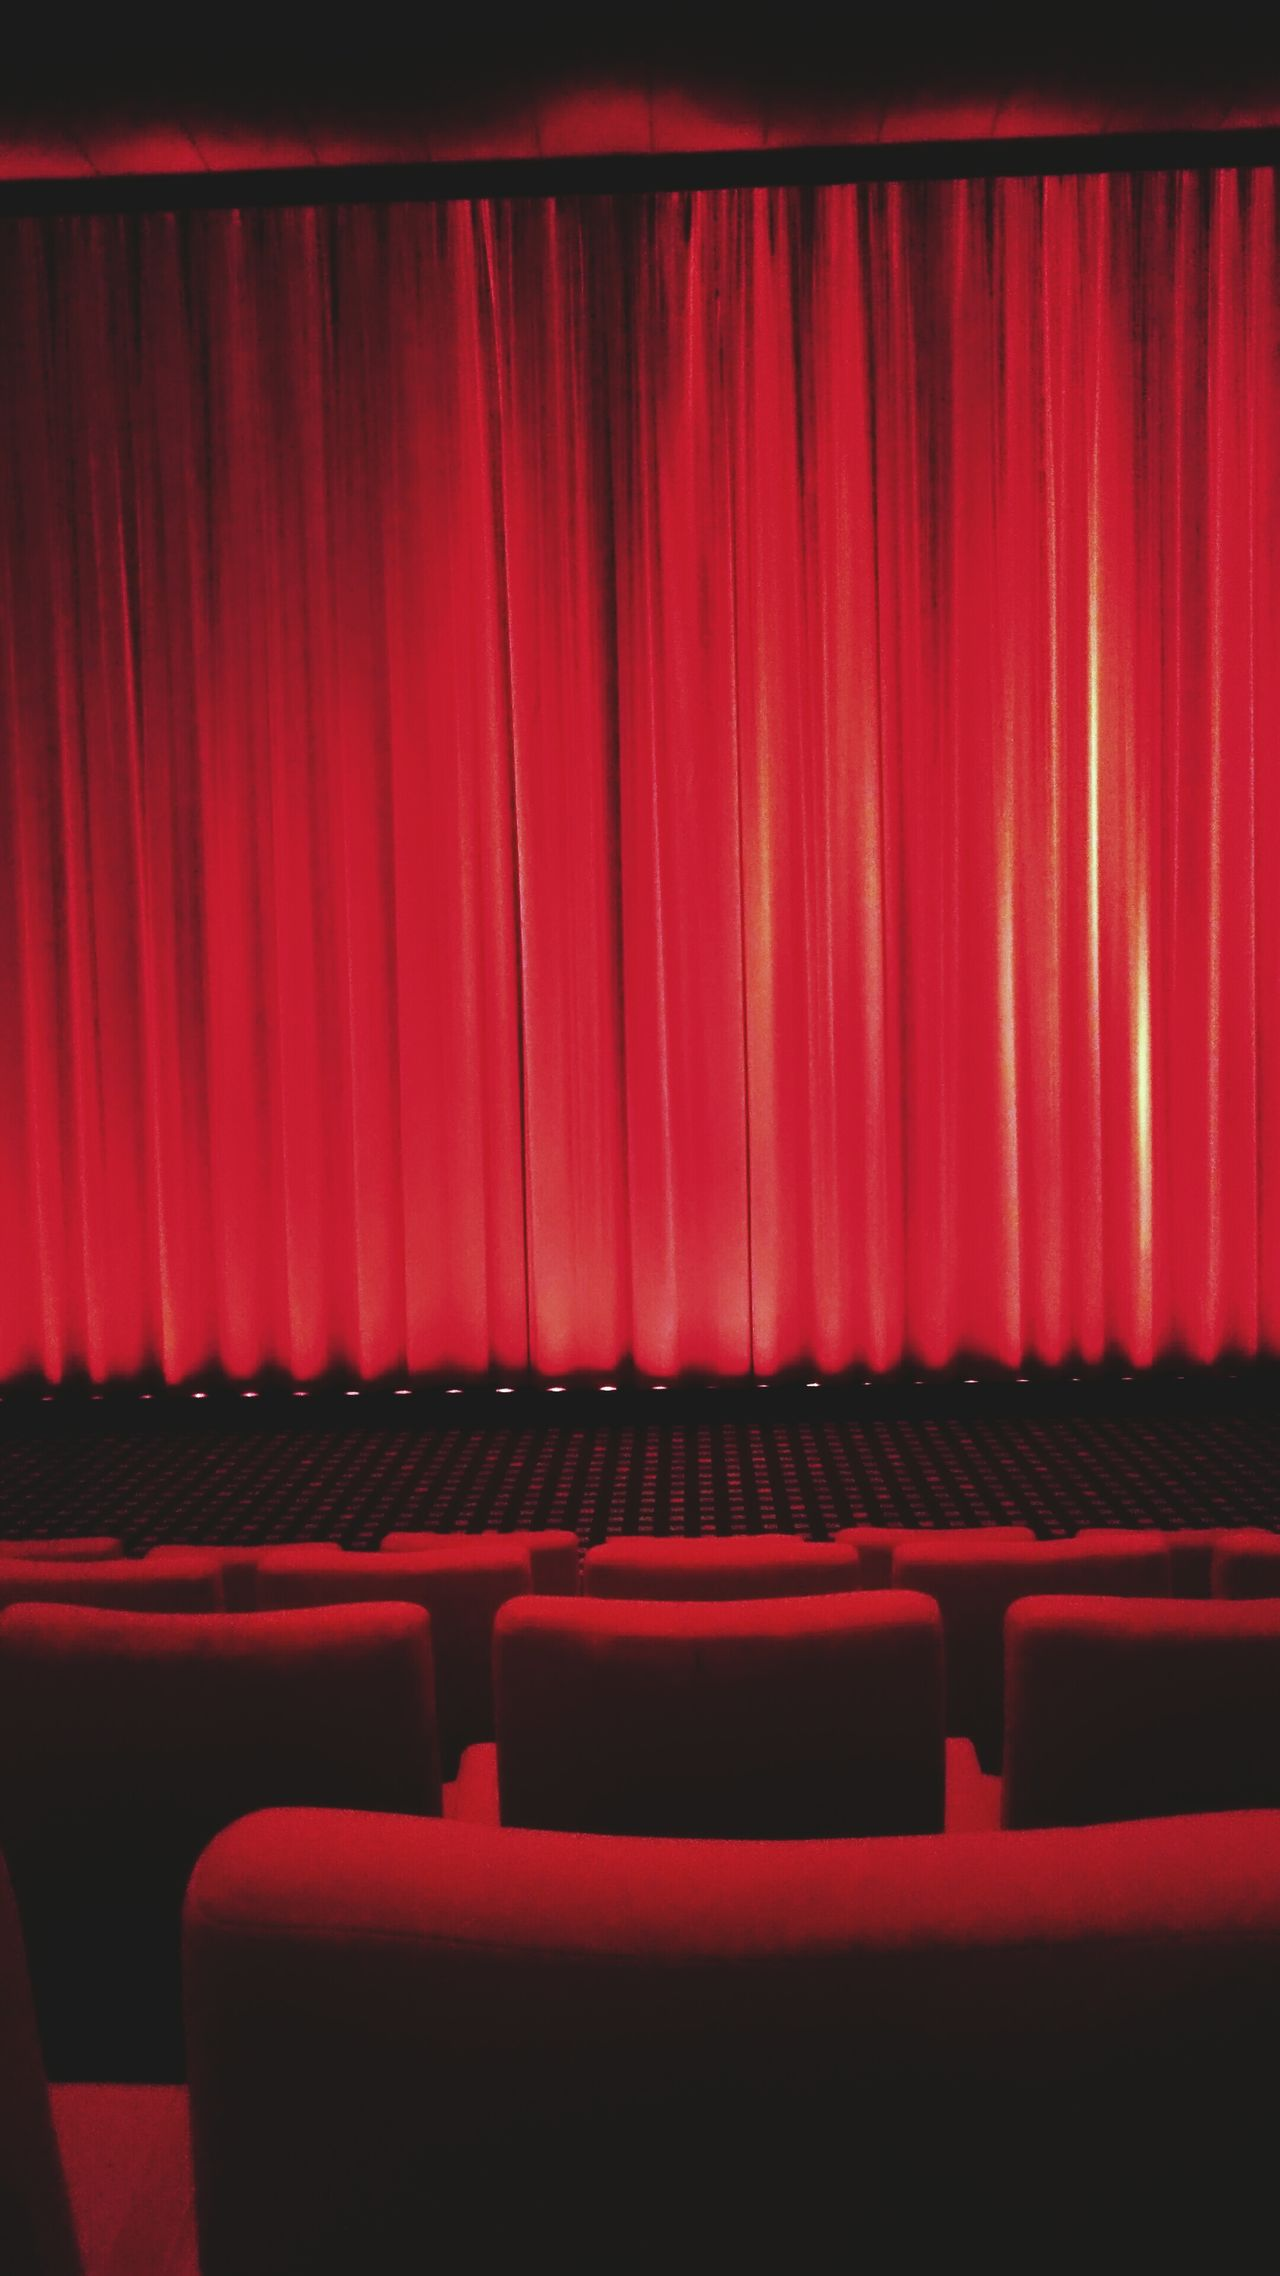 Cinema Red Curtain